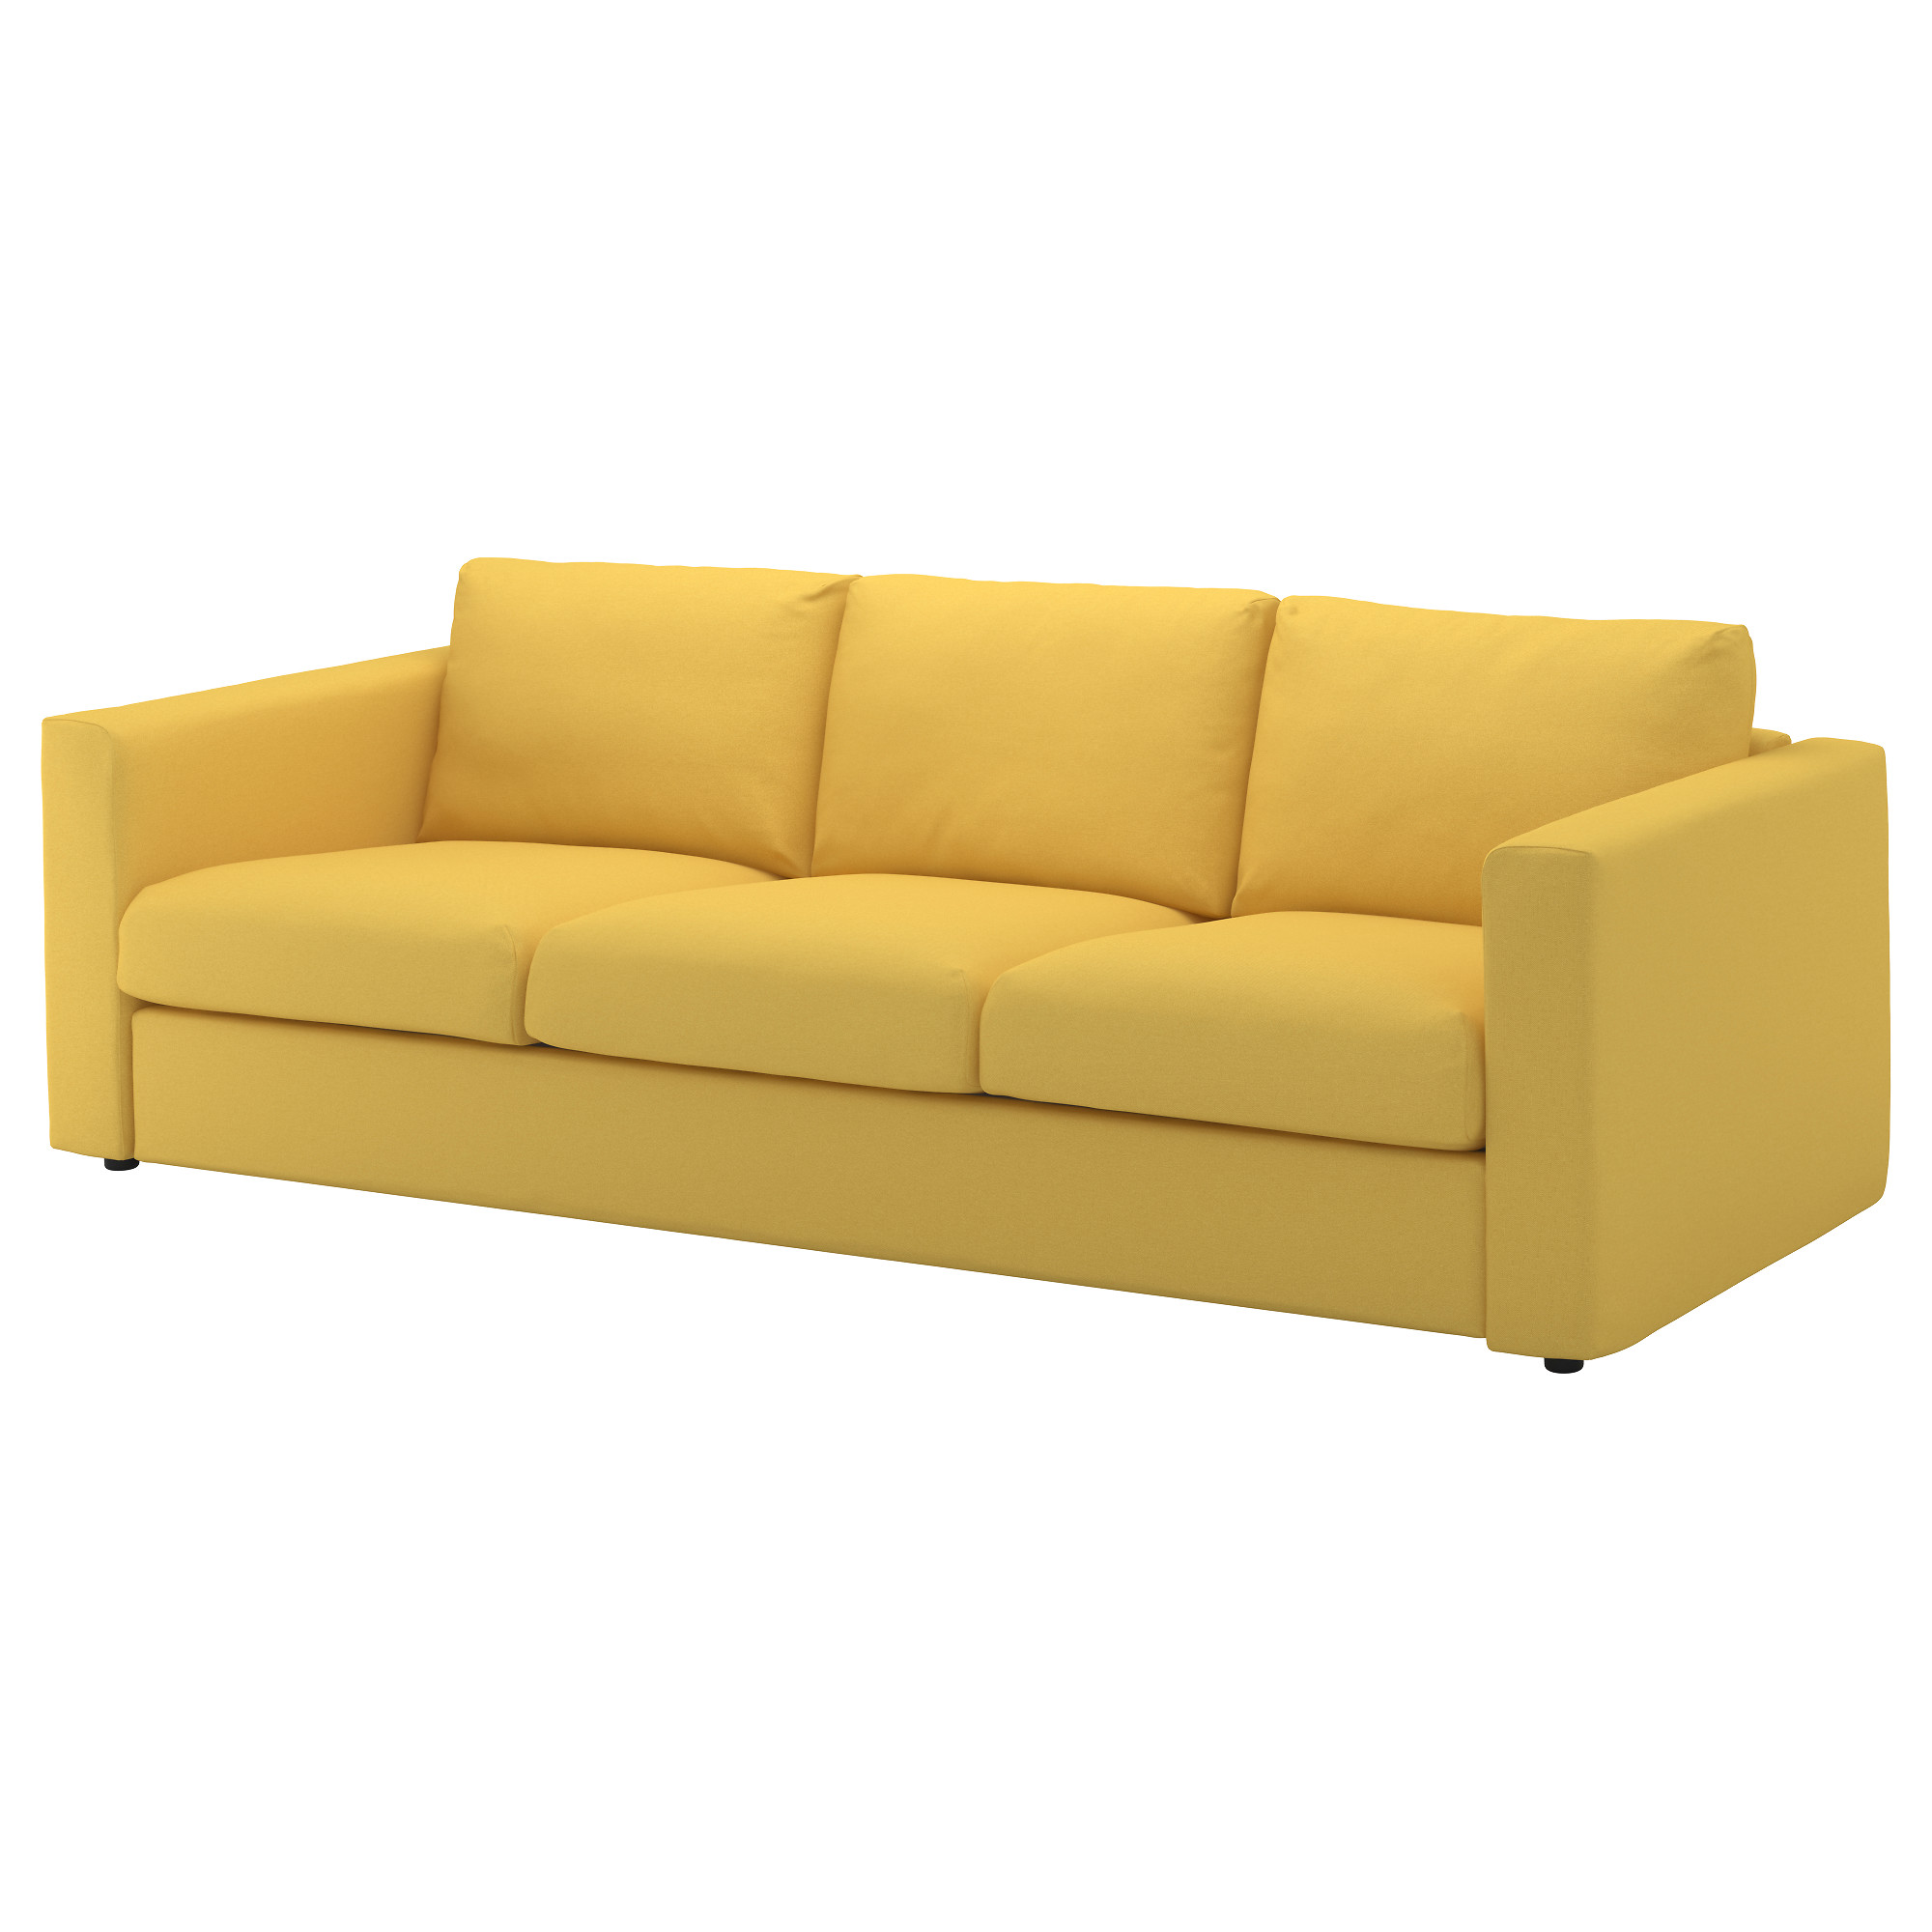 marvelous prepare inside living loveseat comfortable comfy leather best unparalleled sofa comforter ever most design sectional charming